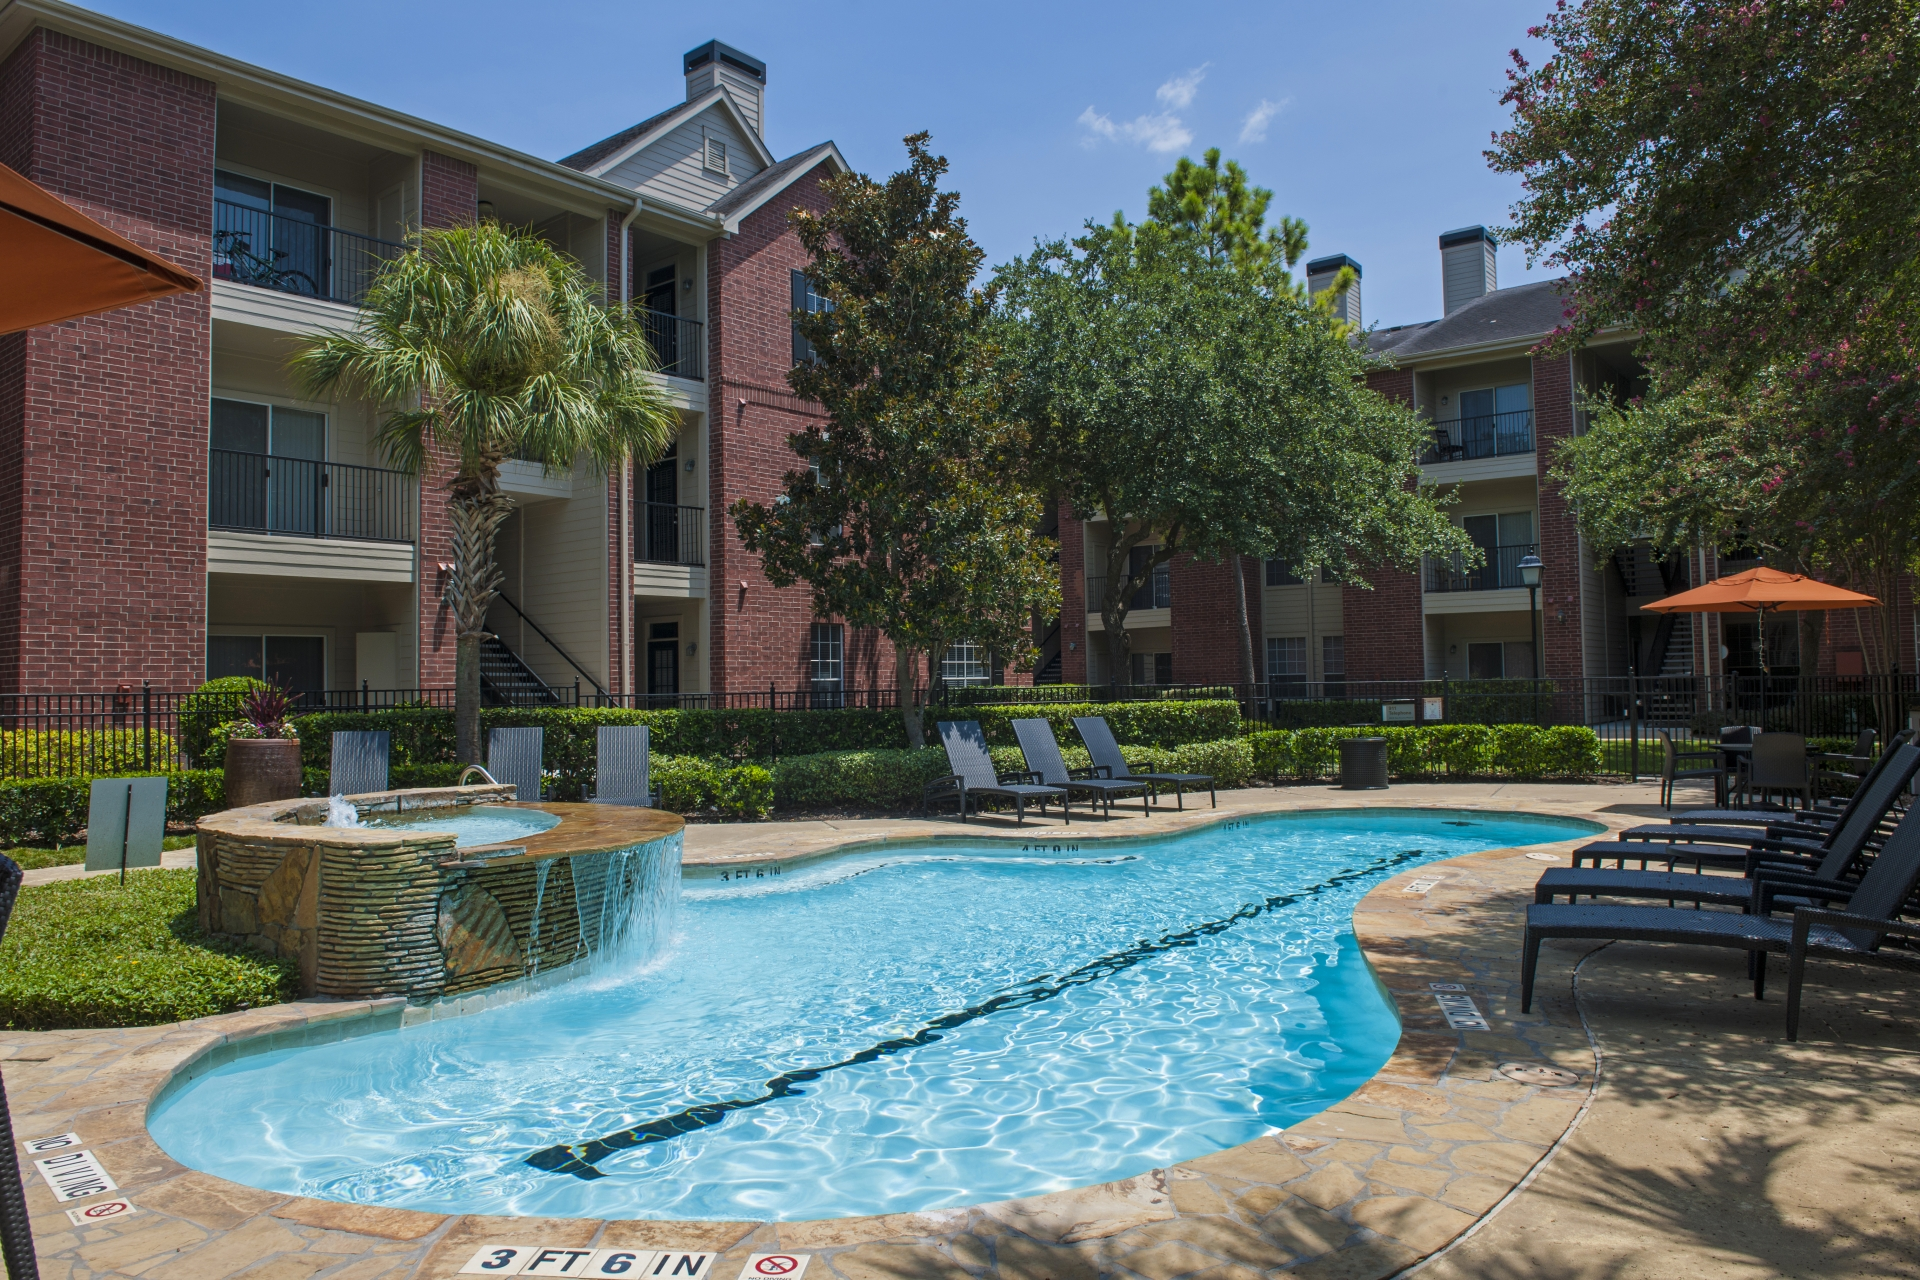 Camden Holly Springs Apartments image 13